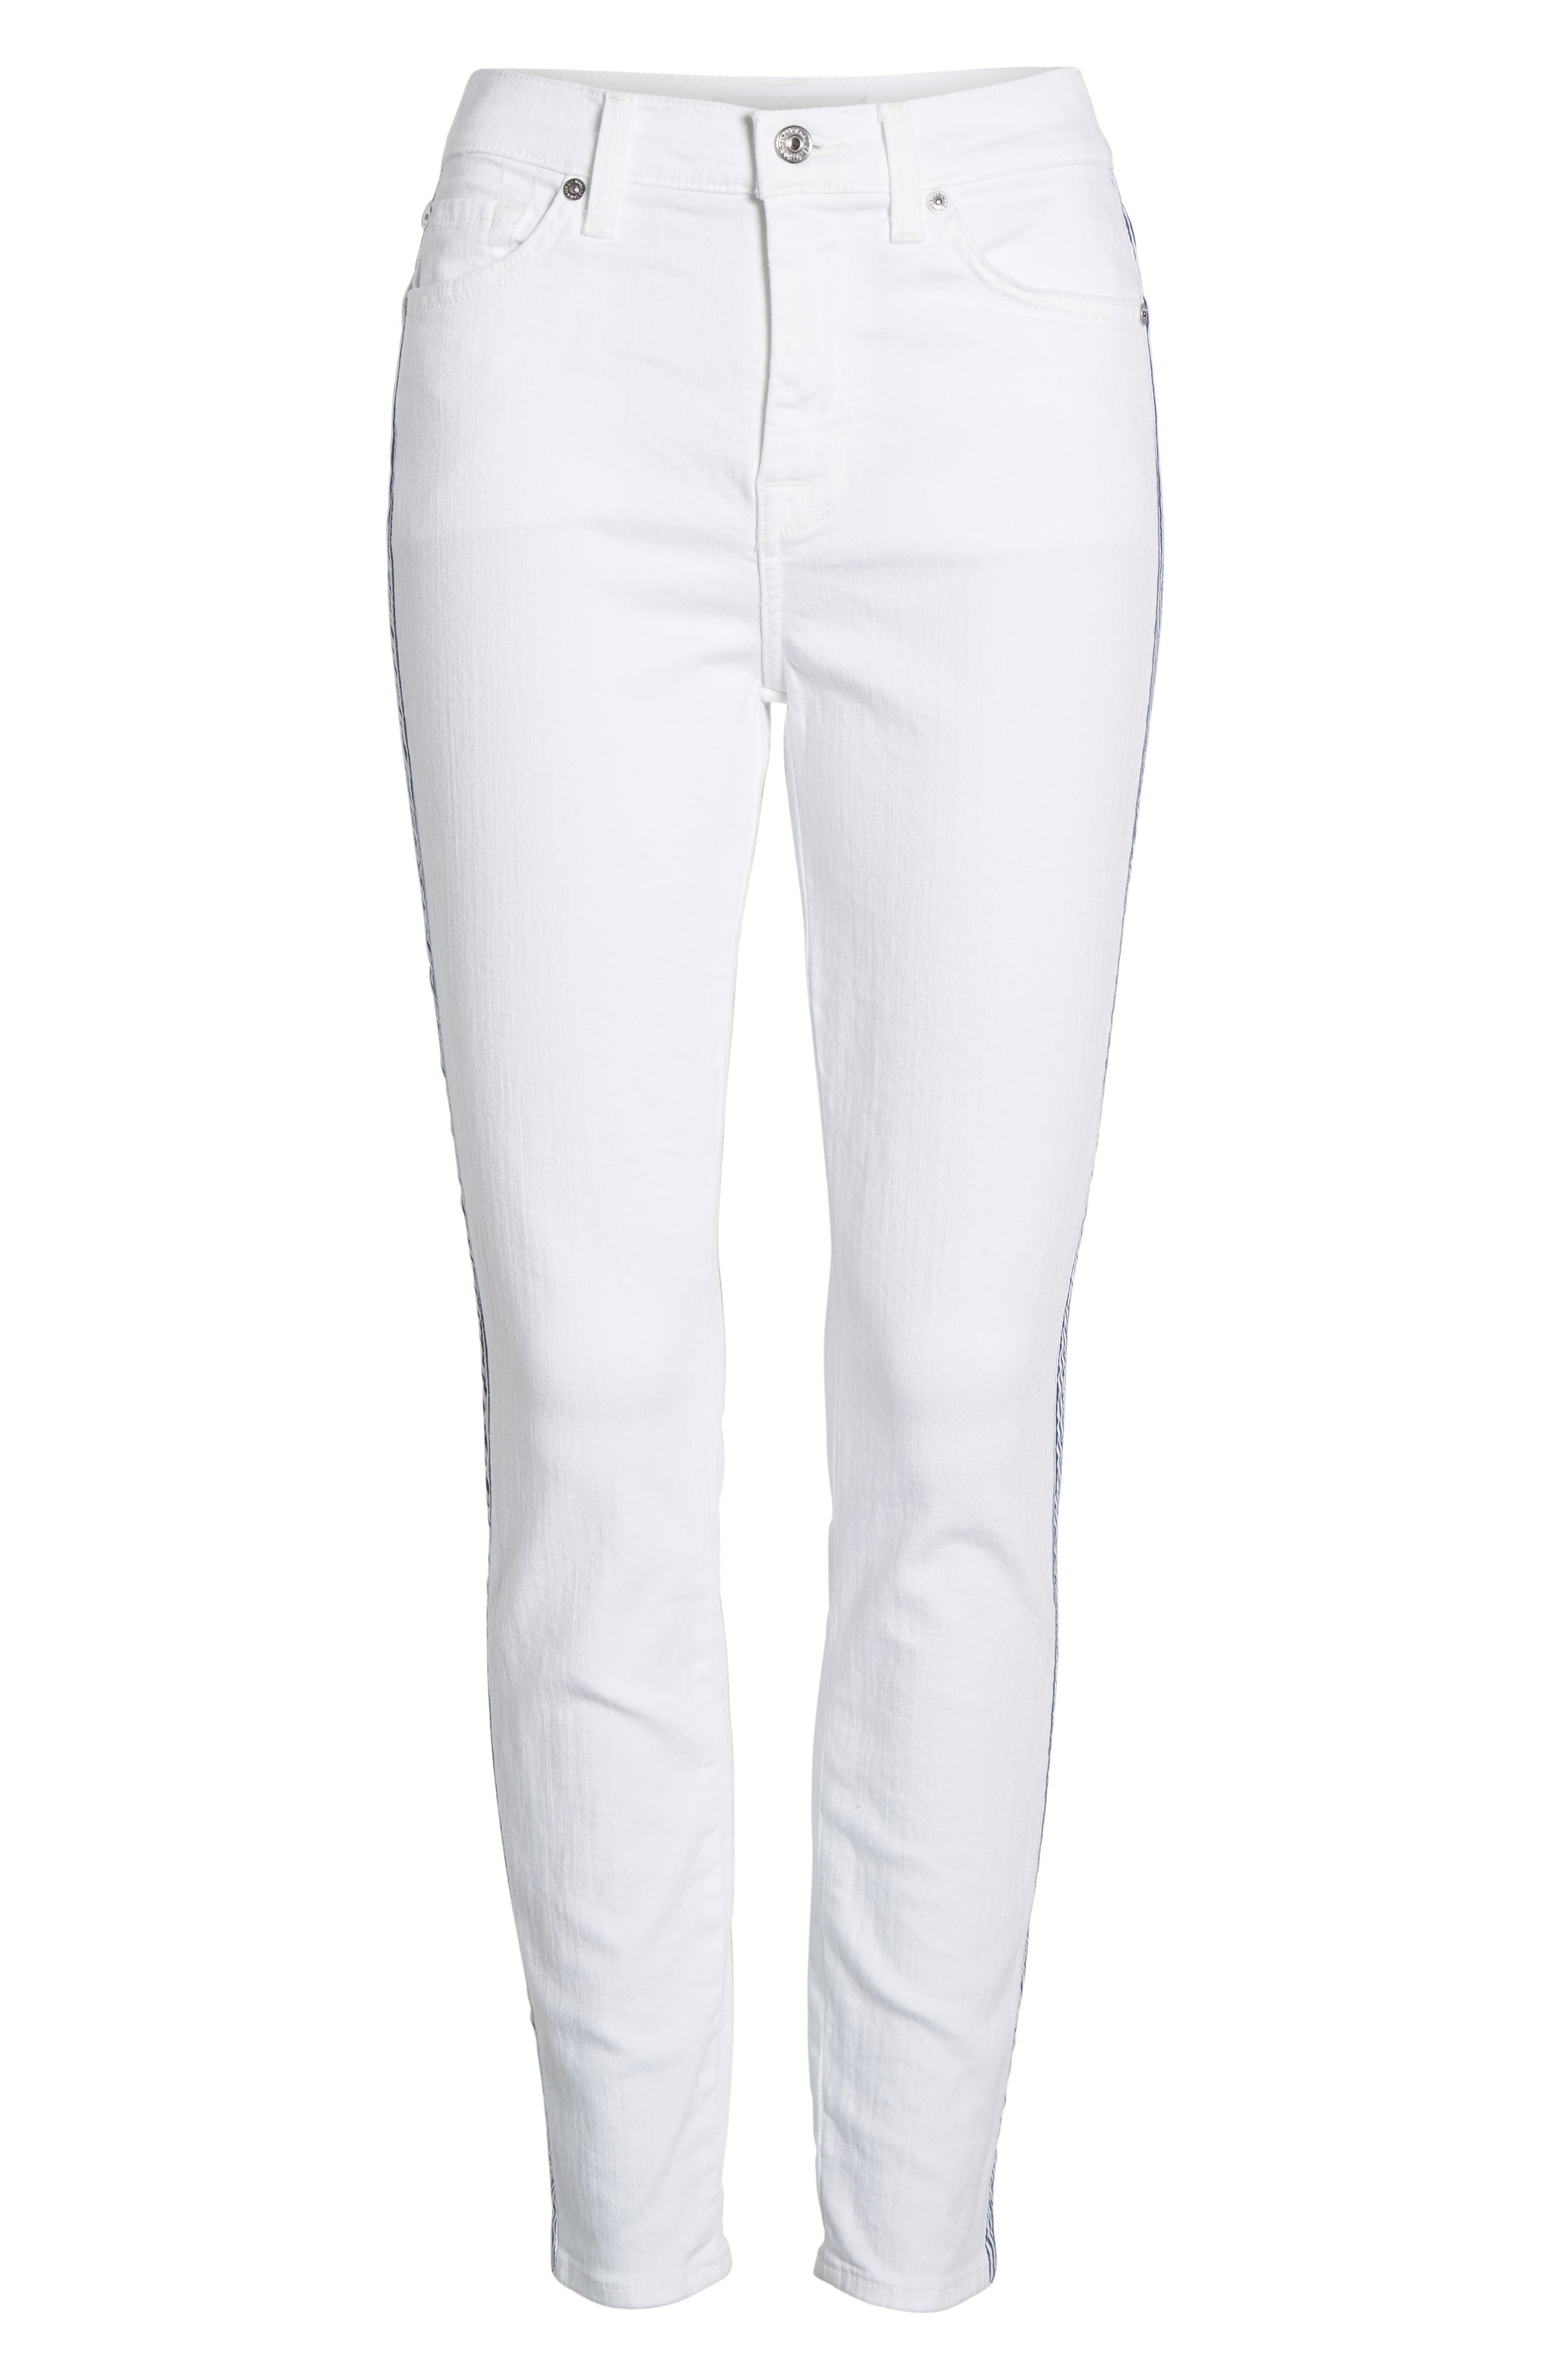 7 FOR ALL MANKIND<SUP>®</SUP>, Side Stripe High Waist Ankle Skinny Jeans, Alternate thumbnail 7, color, WHITE RUNWAY DENIM